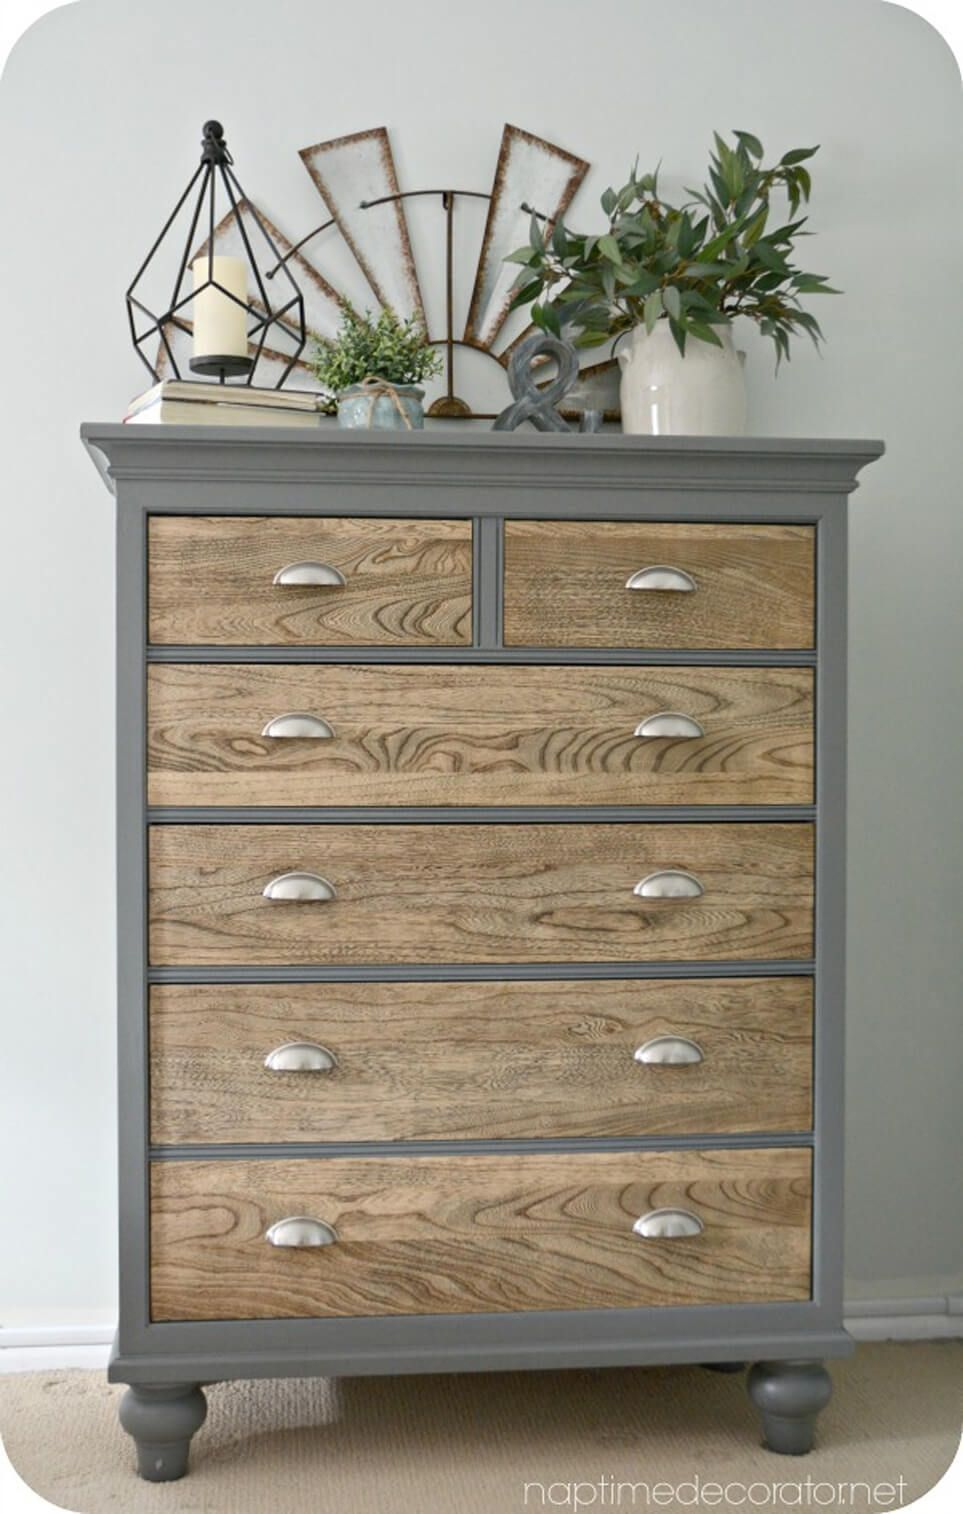 height item with eight trim rustic width liberty wood furniture threshold traditions dresser products drawer